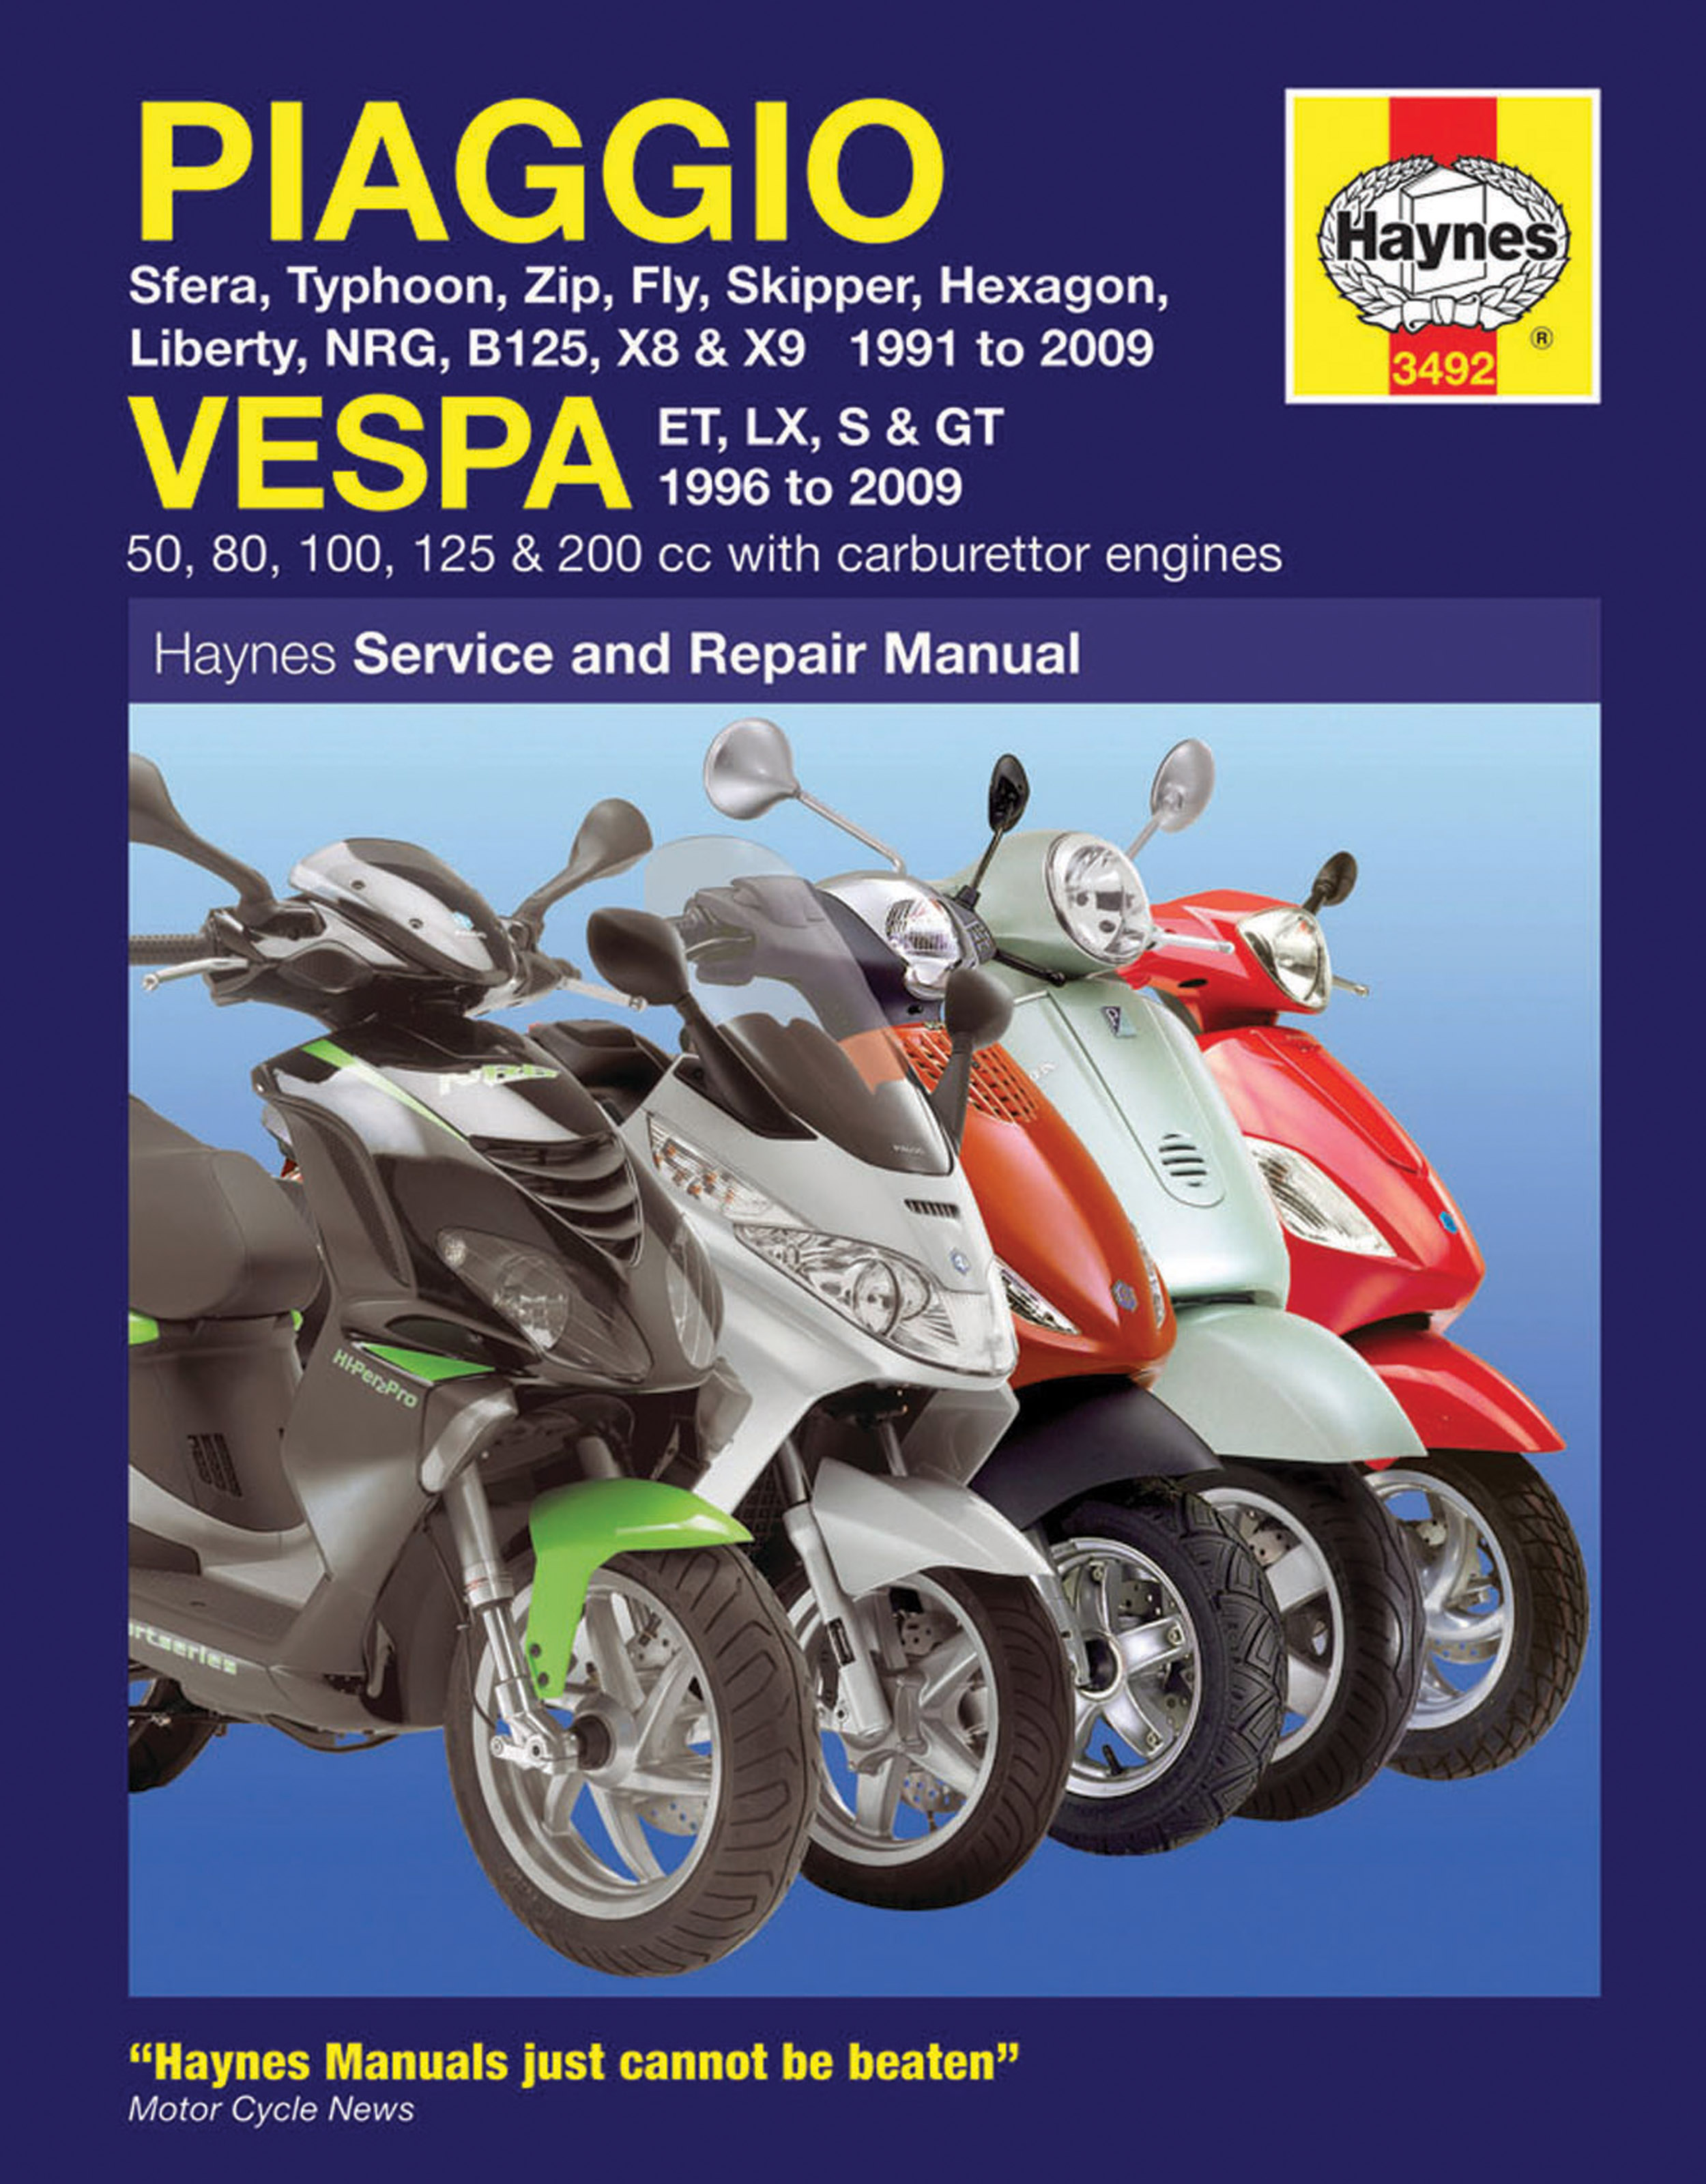 Vespa ET4 125 (1996 - 2004) Repair Manuals